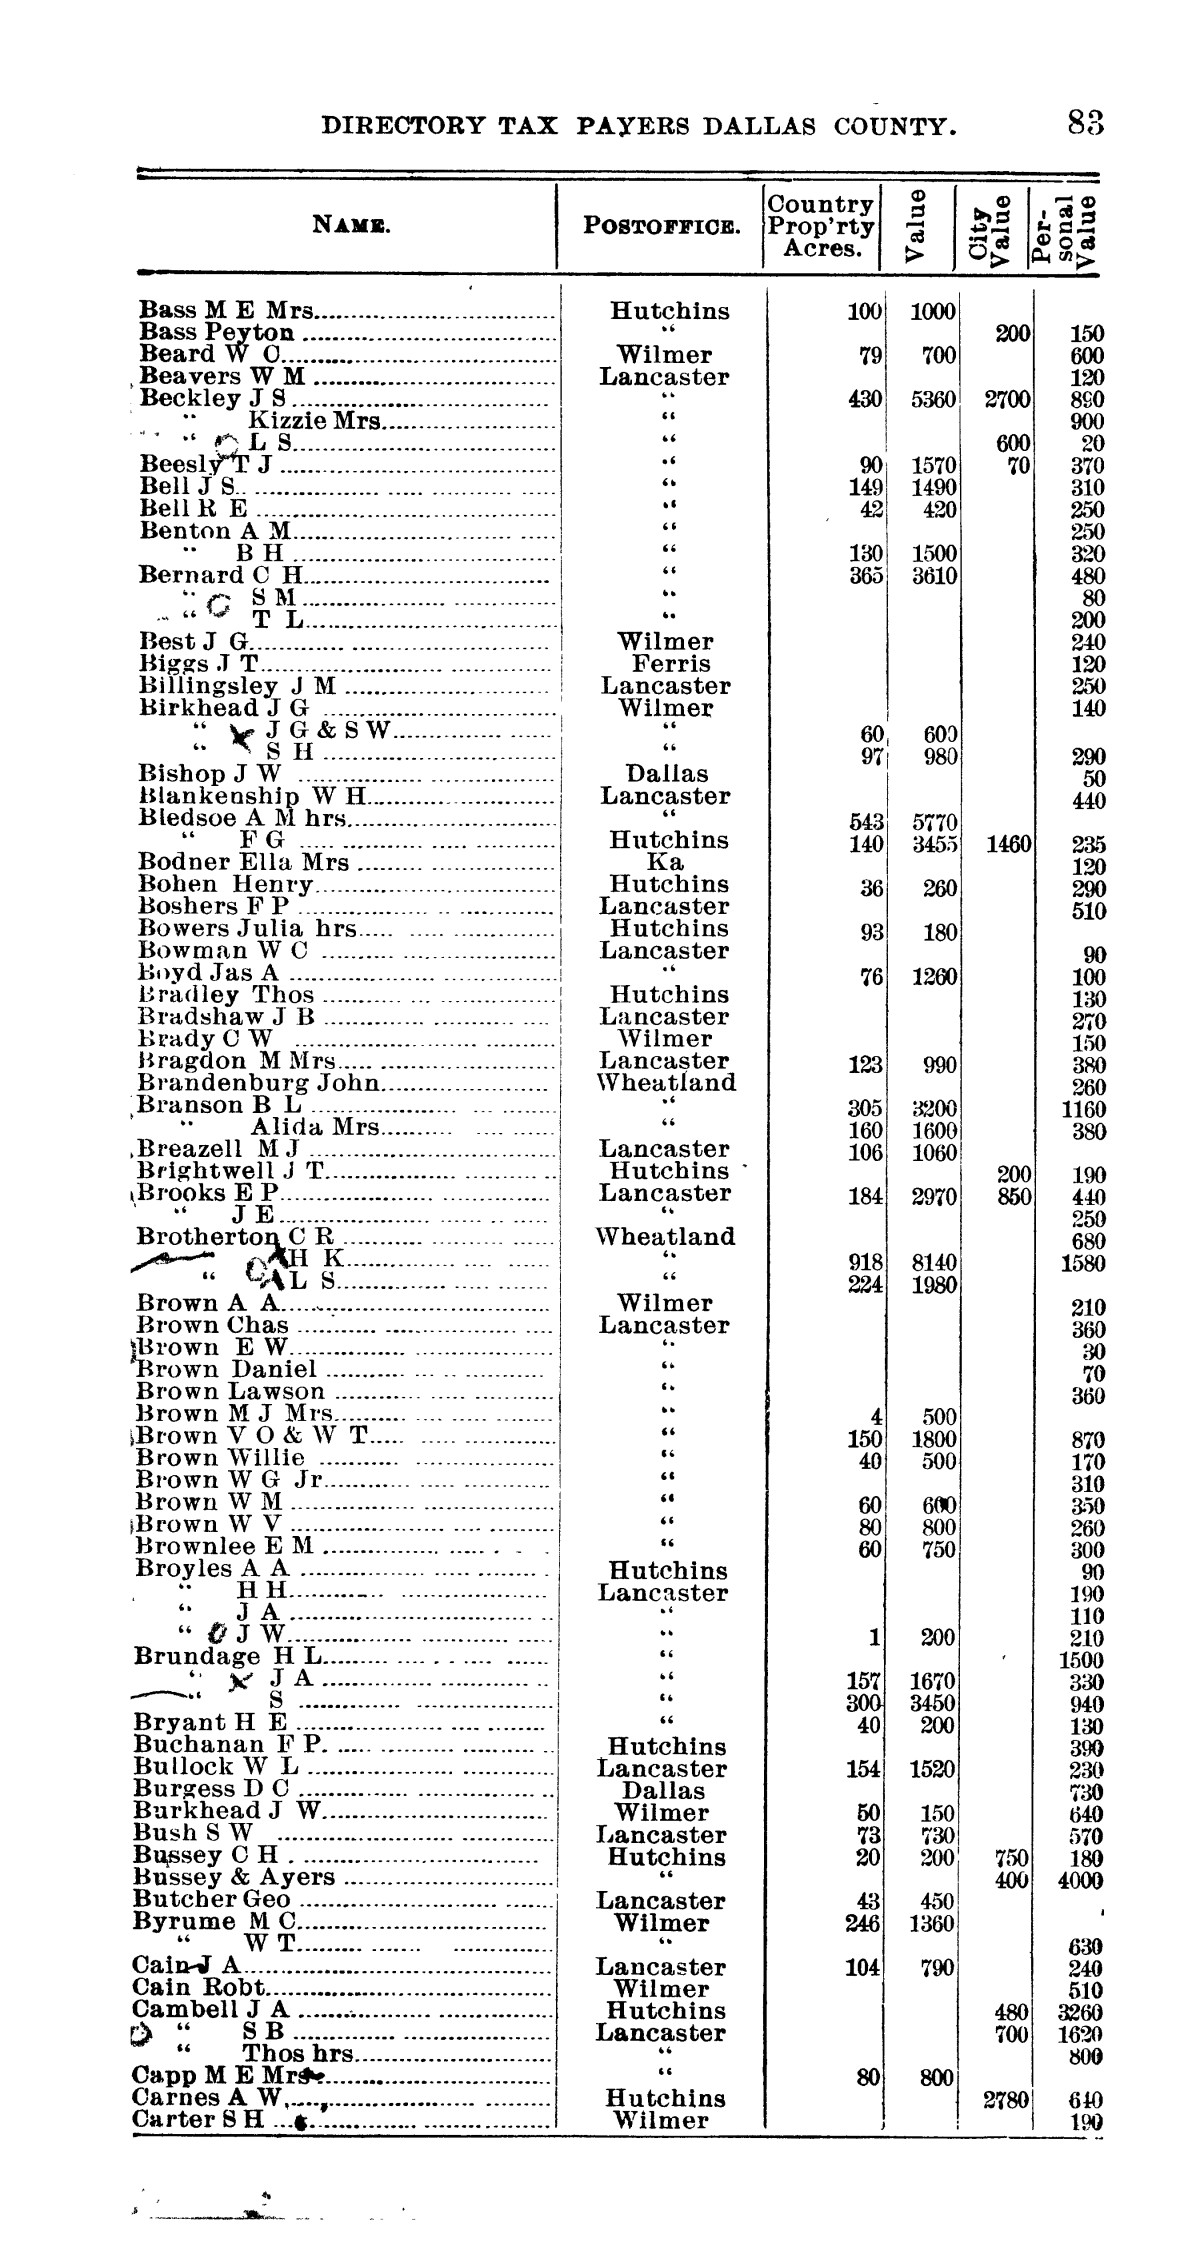 Official Directory: Taxpayers of Dallas County, Texas                                                                                                      83